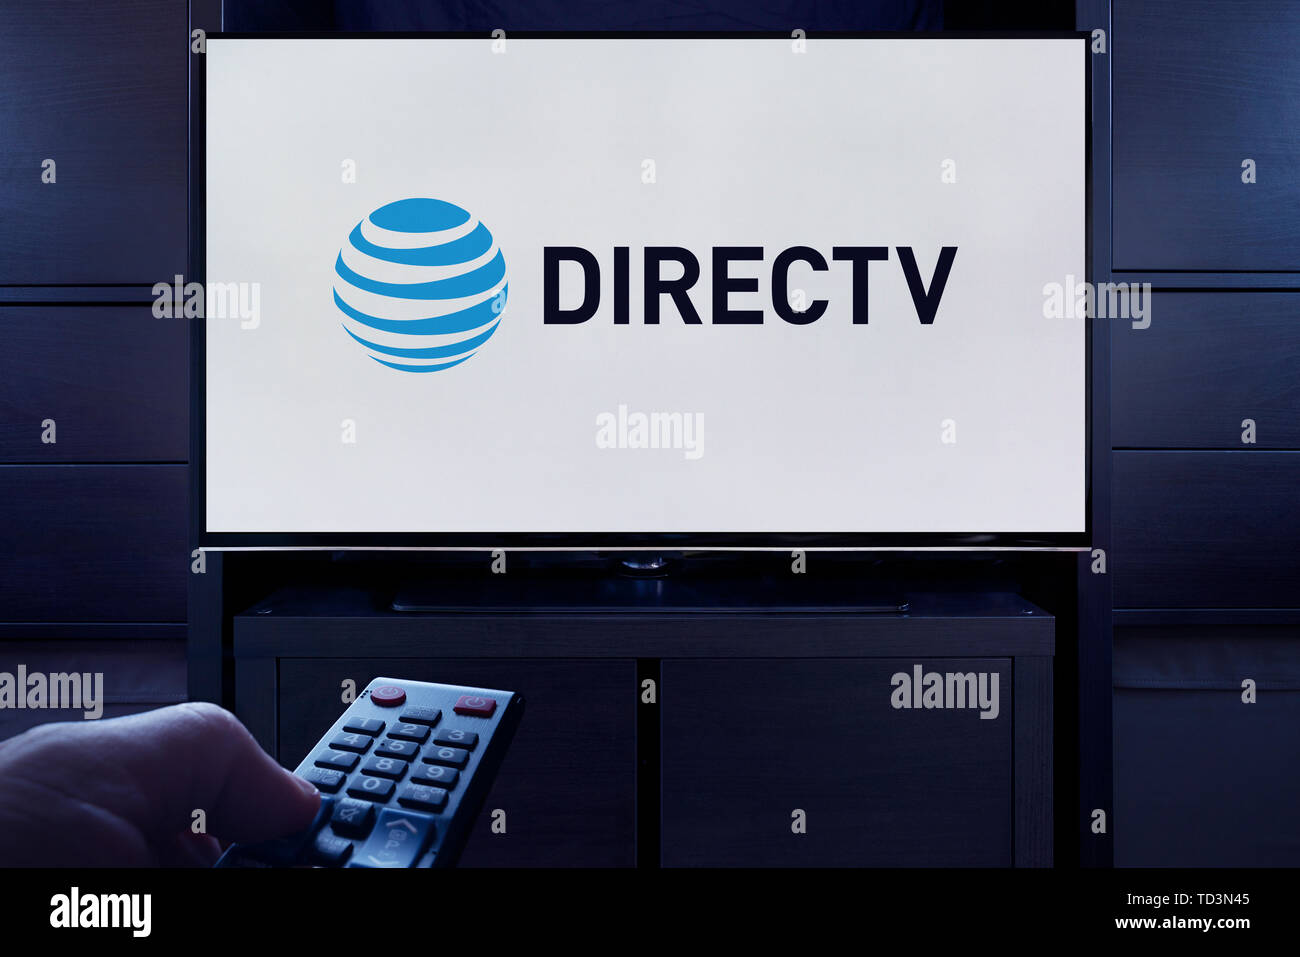 Un uomo punti un telecomando TV al televisore che visualizza il logo per il DirecTV on demand video streaming service (solo uso editoriale). Immagini Stock